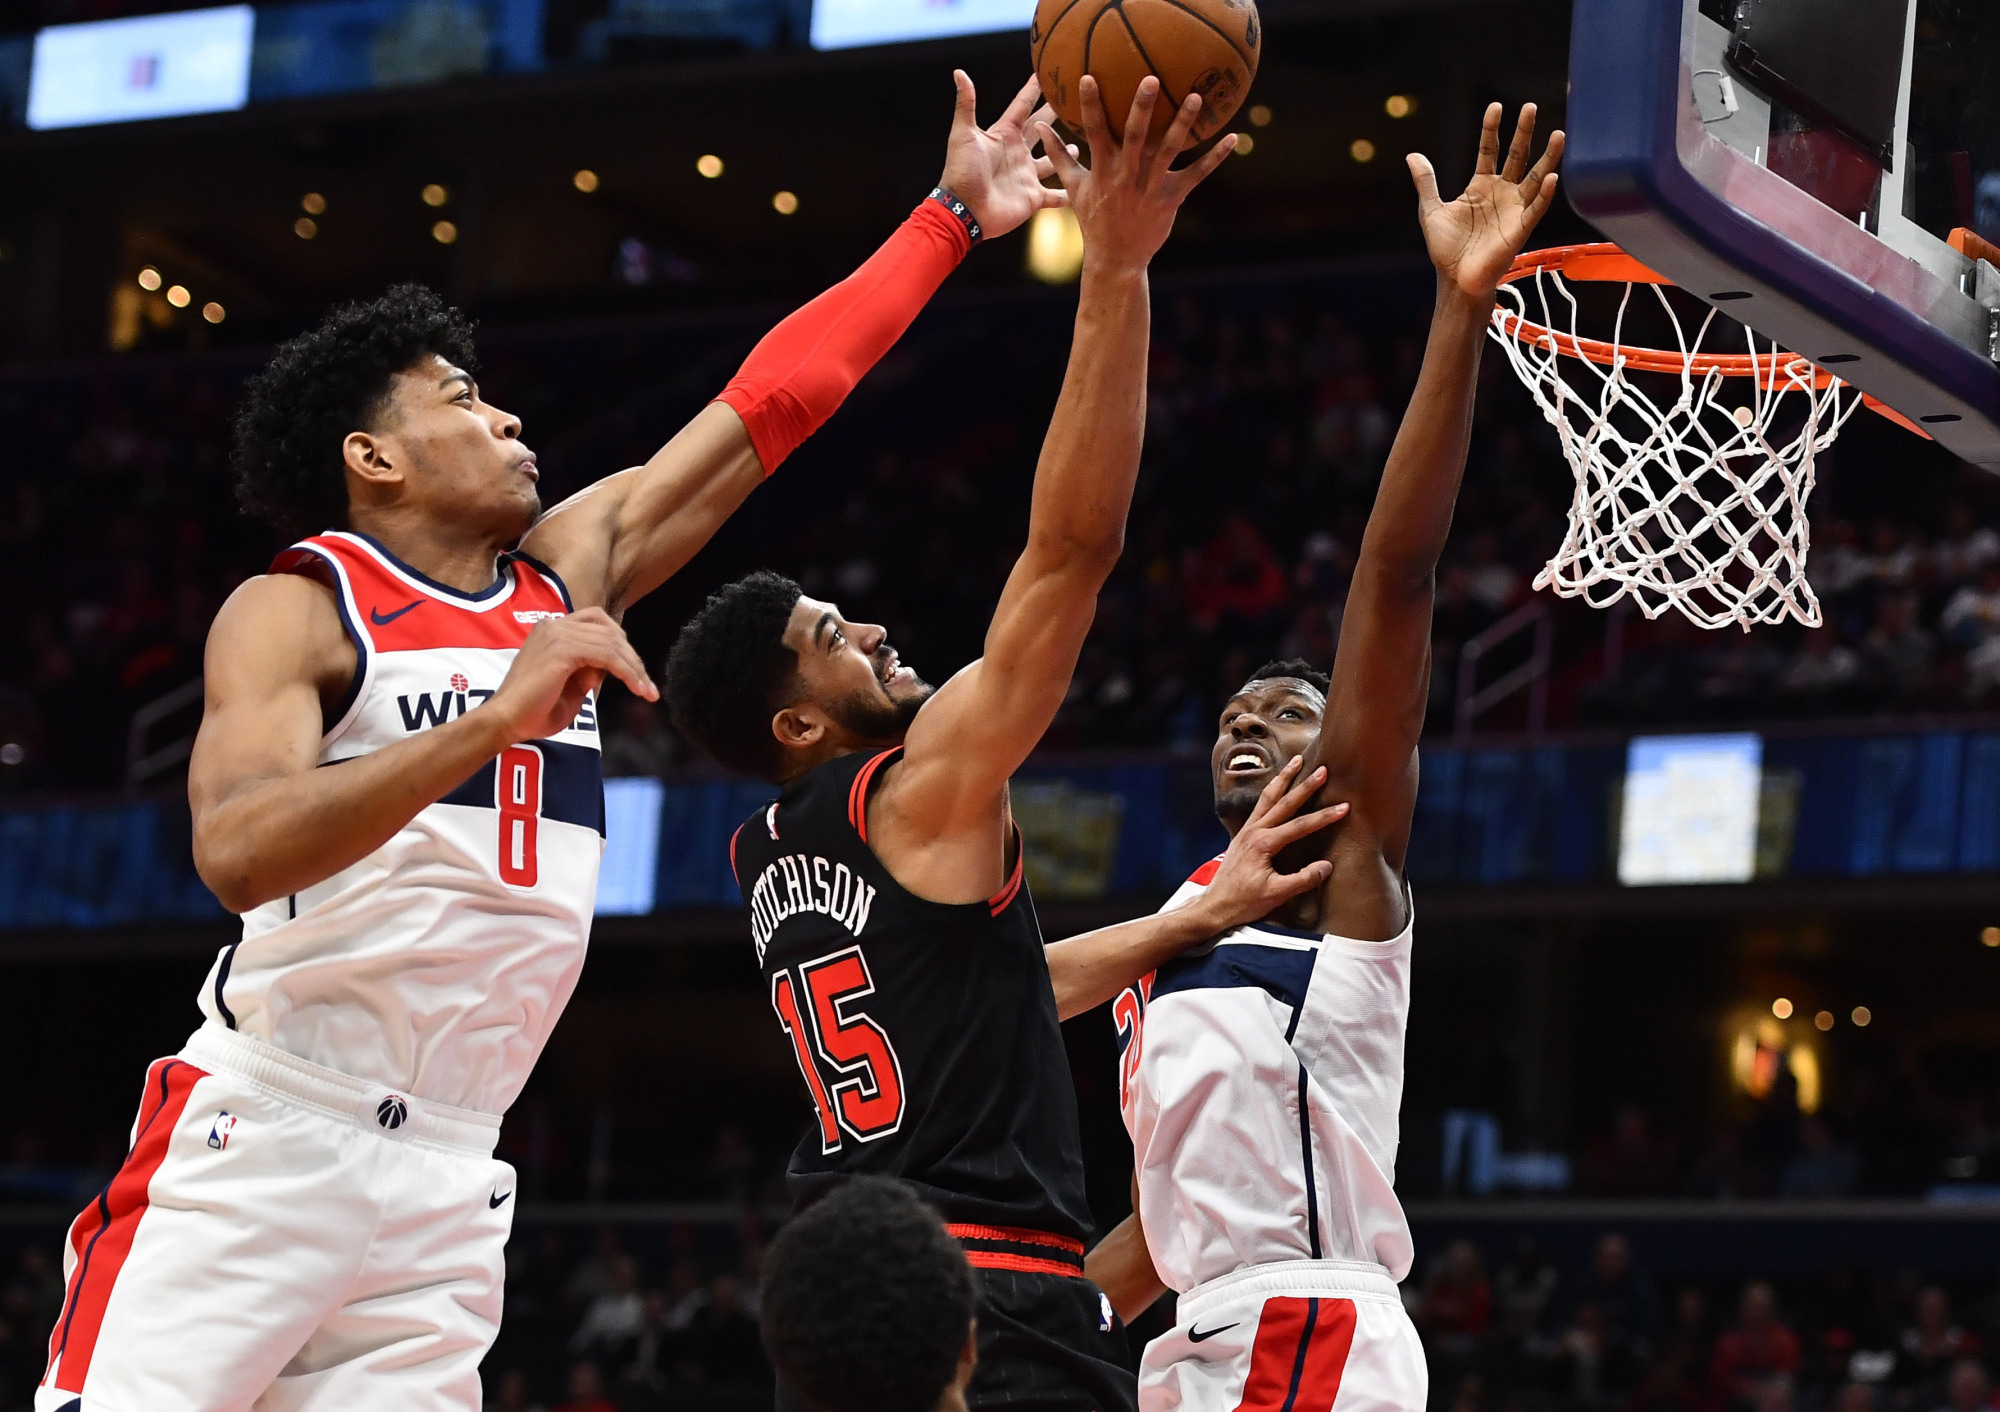 Wizards rookie forward Rui Hachimura, blocking a shot by the Bulls' Chandler Hutchison on Feb. 11, is a hard-working player at both ends of the floor. | USA TODAY / VIA REUTERS